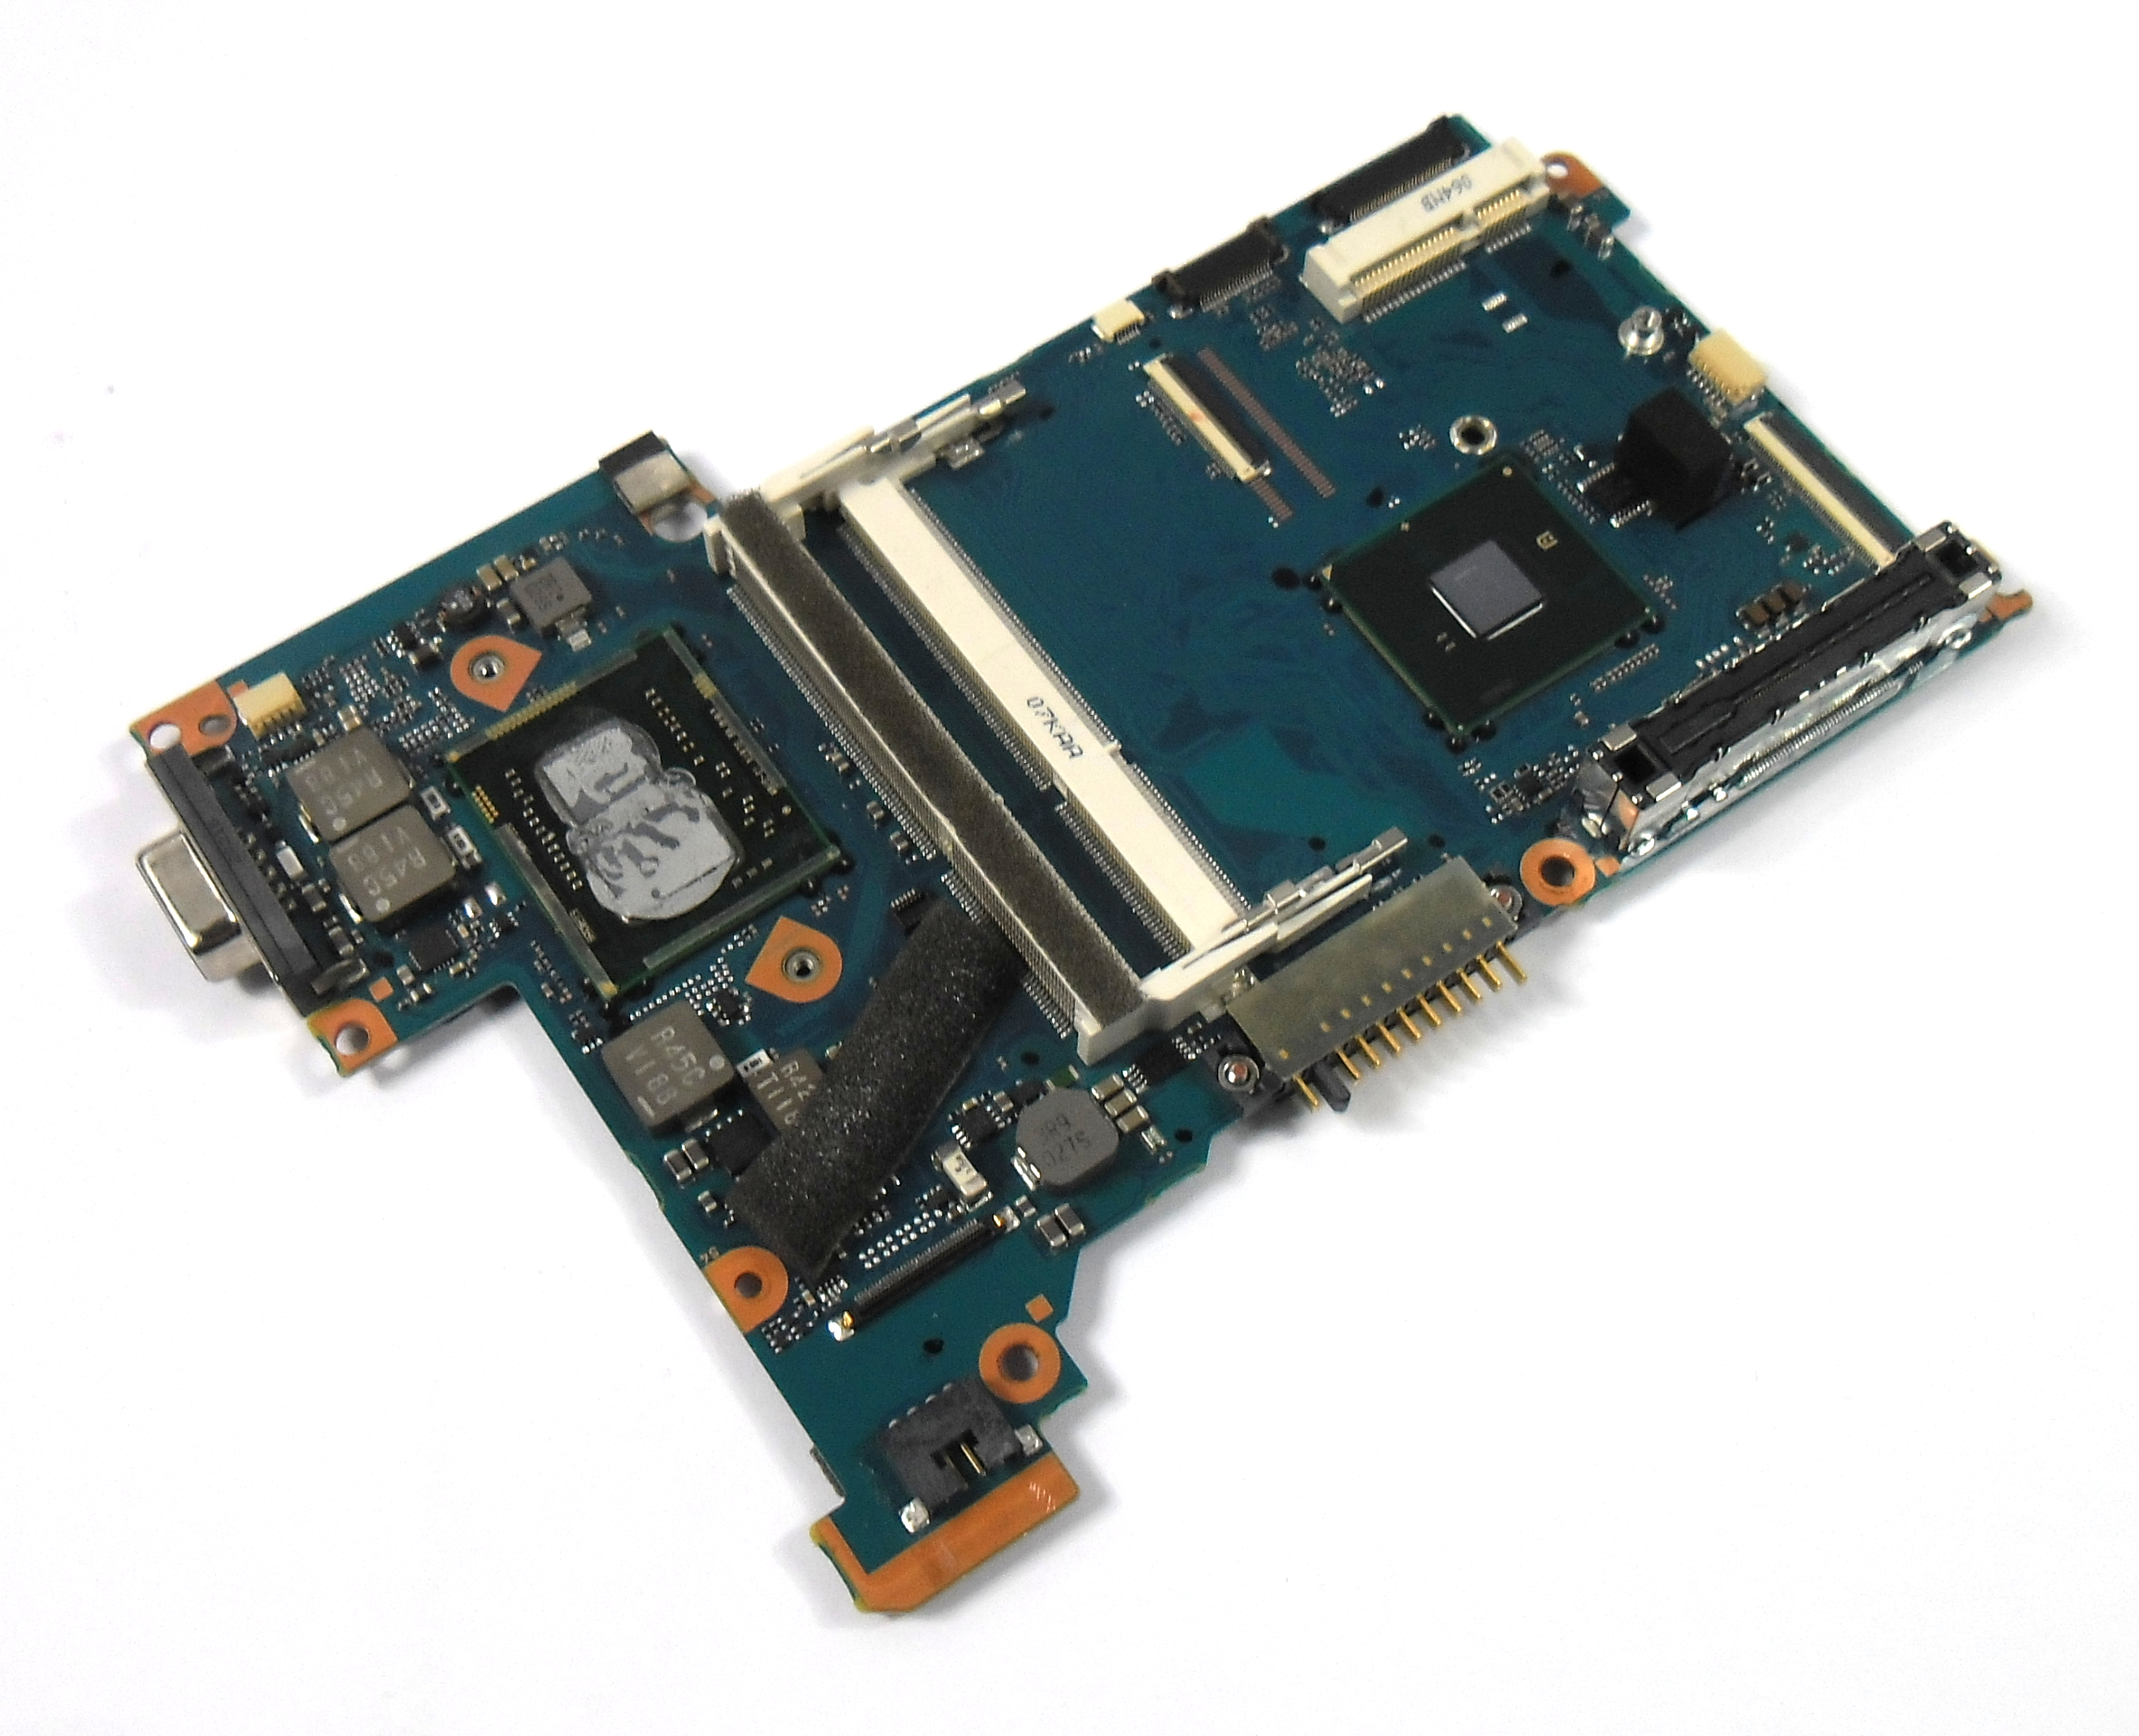 Toshiba FULSY4 Portege R700 Laptop Motherboard with Intel i3-350M CPU